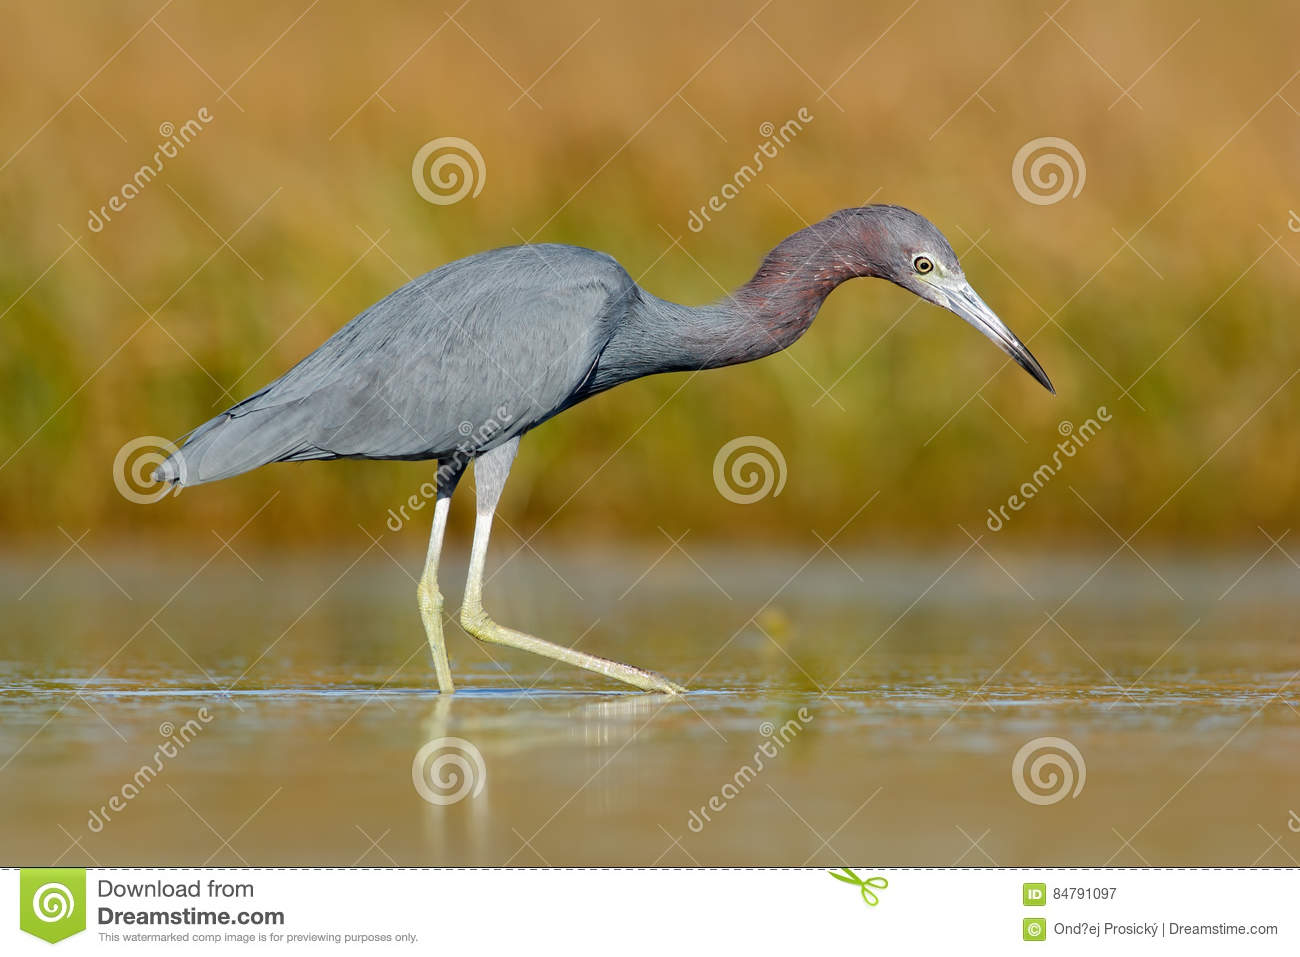 Heron with water grass. Little Blue Heron, Egretta caerulea, in the water, Mexico. Bird in the beautiful green river water. Wildli